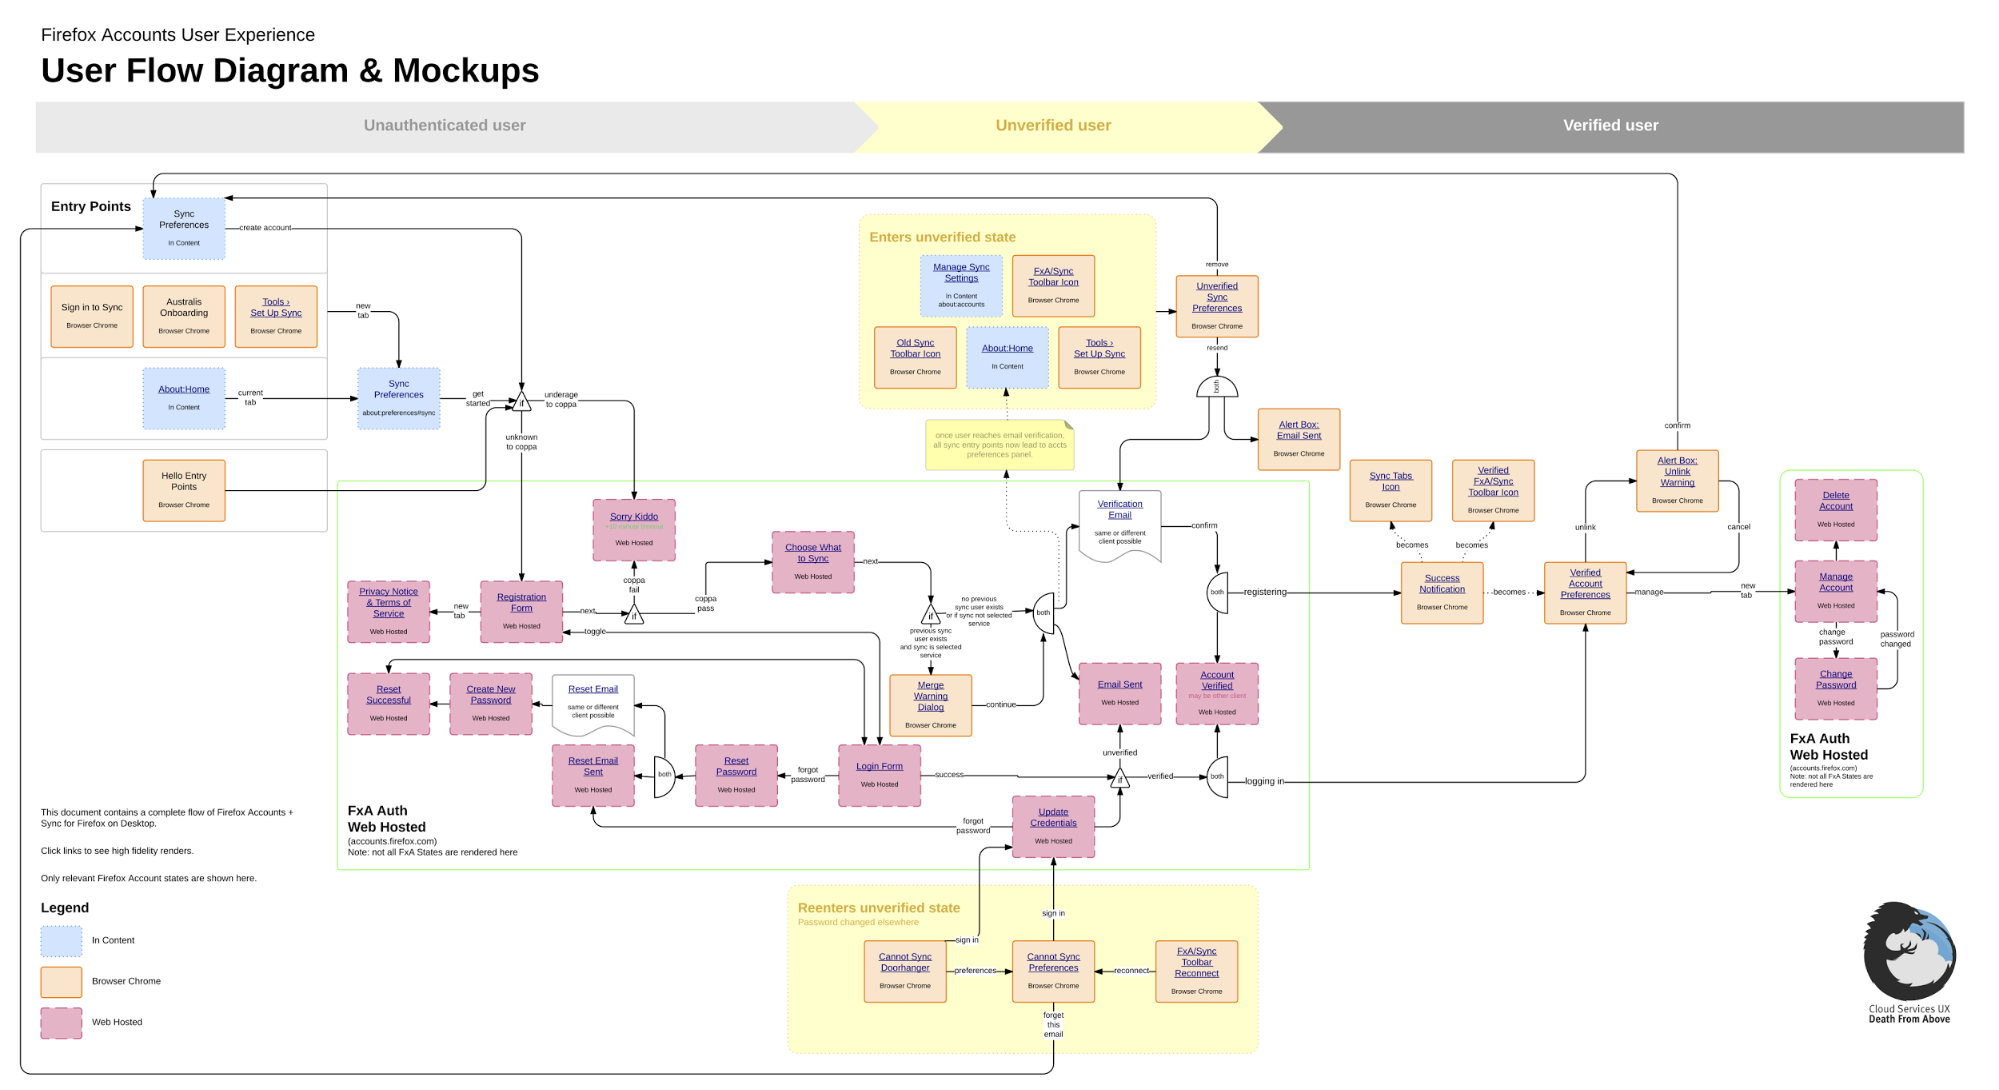 mozilla s user flow diagram with graphics in dropbox [ 1999 x 1090 Pixel ]